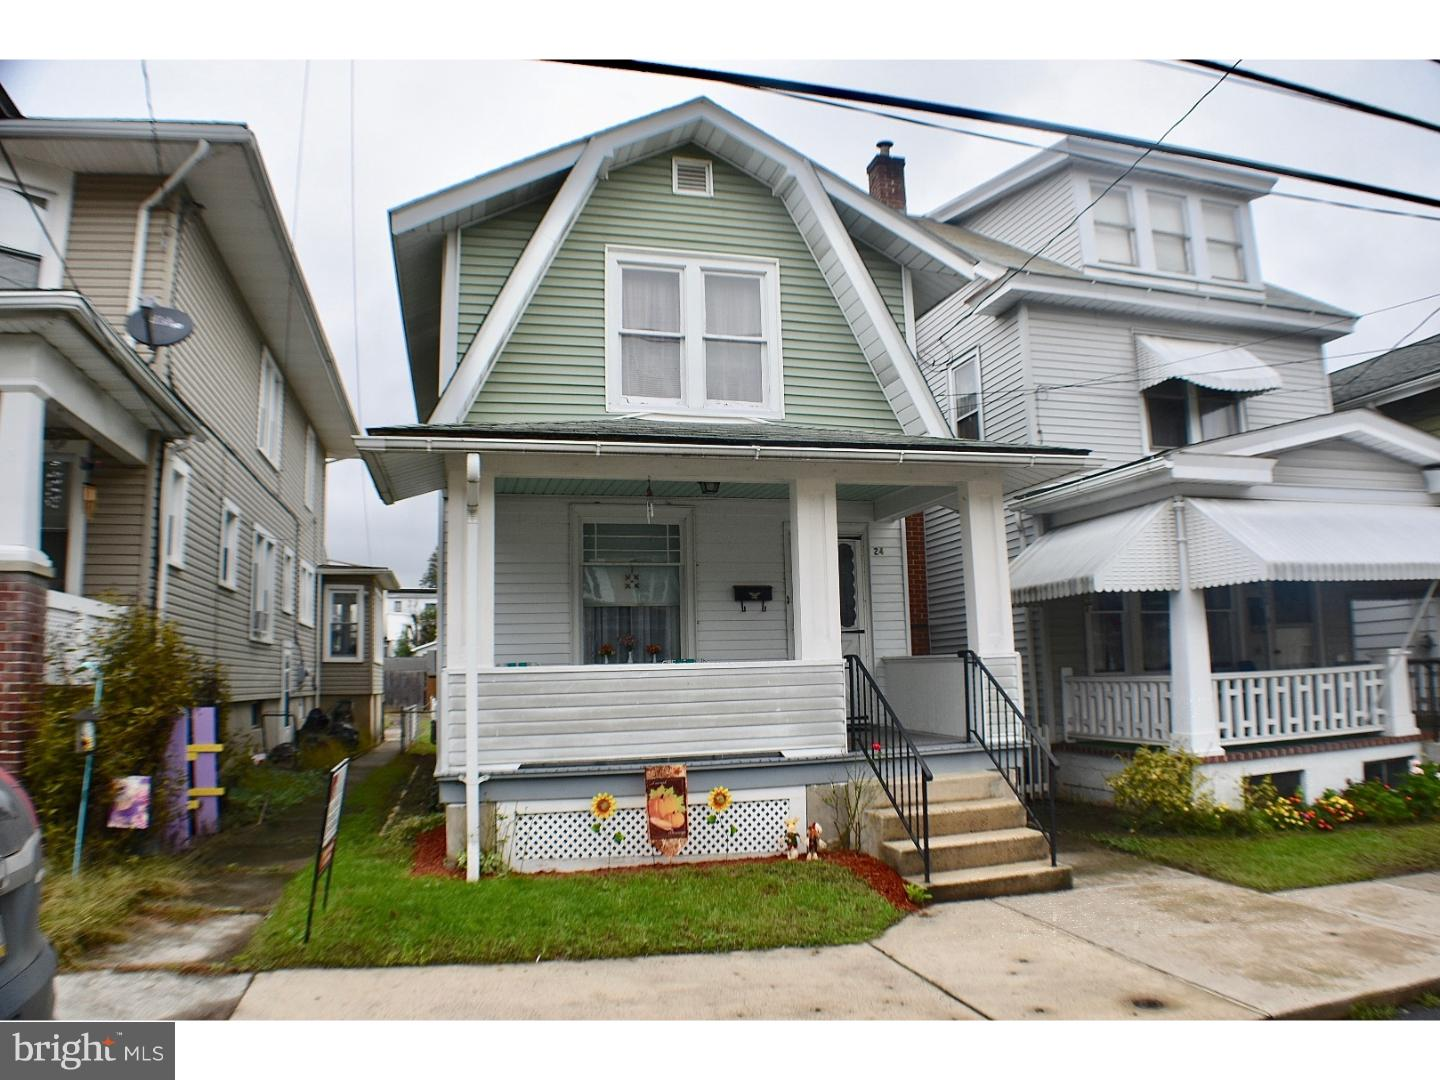 Single Family Home for Sale at 24 W LAUREL Street Tremont, Pennsylvania 17981 United States